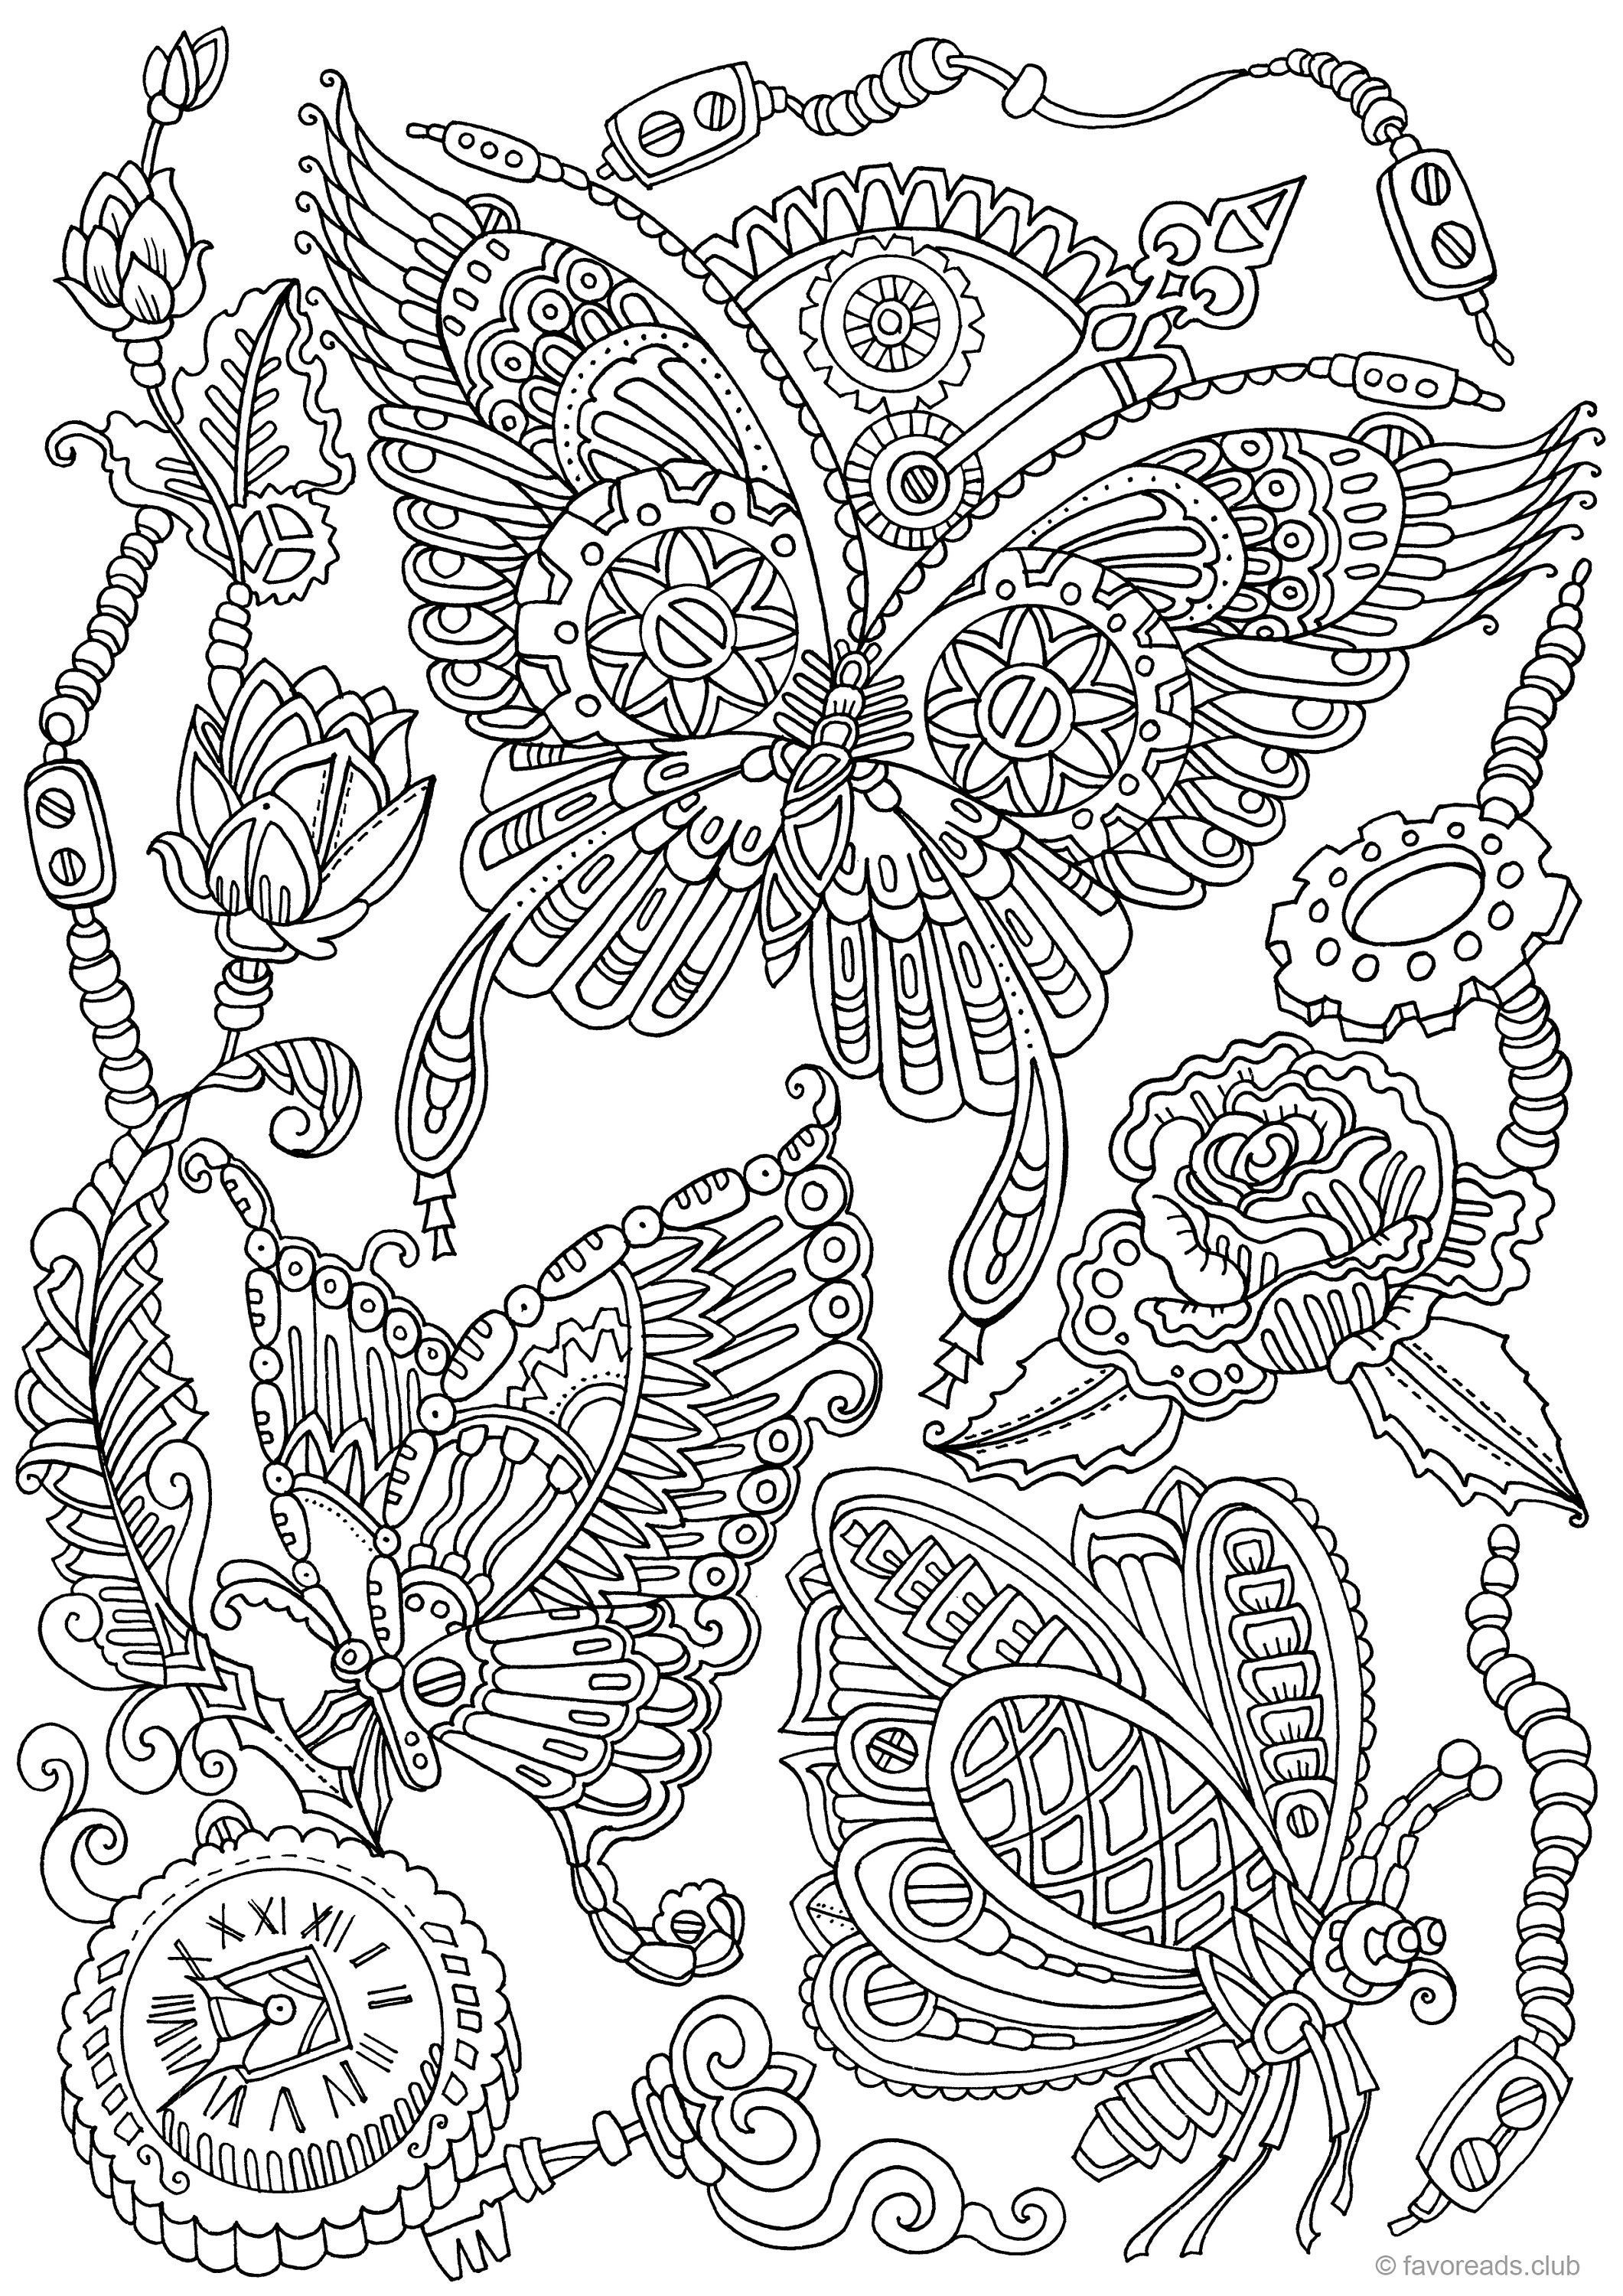 Steampunk Butterflies Printable Adult Coloring Page from ...